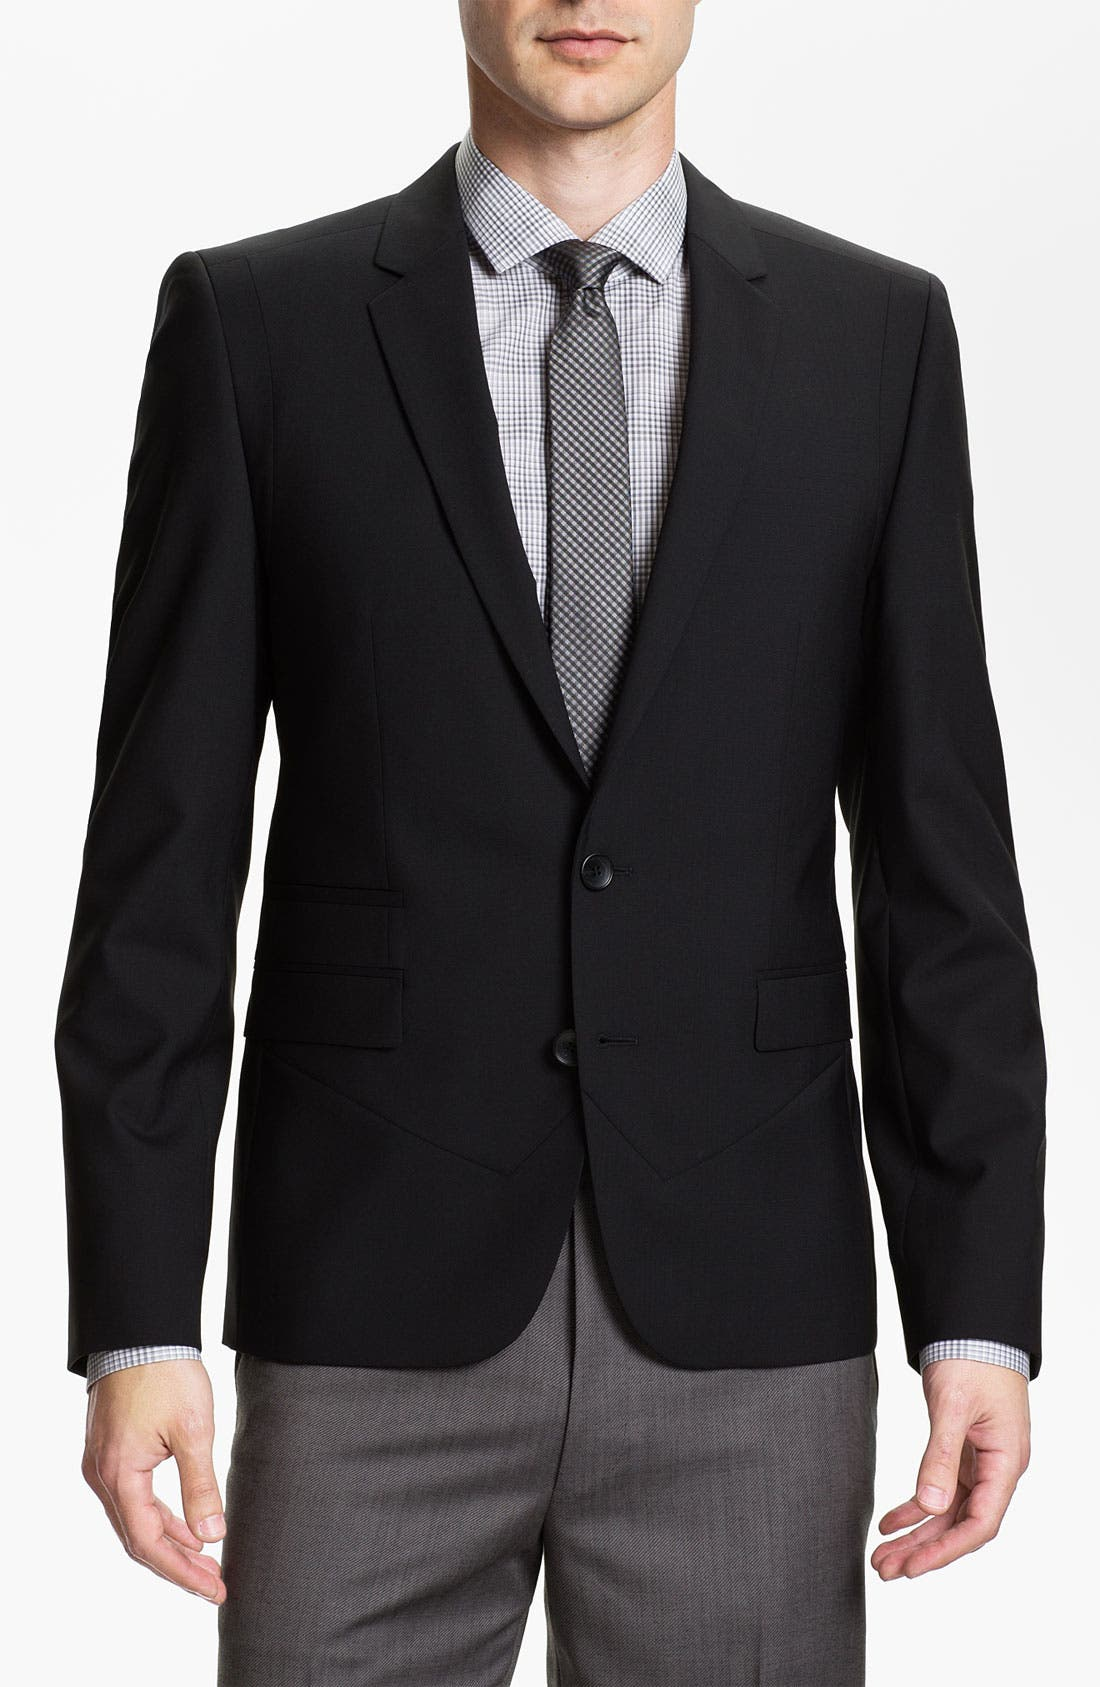 Alternate Image 1 Selected - HUGO 'Arwis' Trim Fit Stretch Wool Blazer